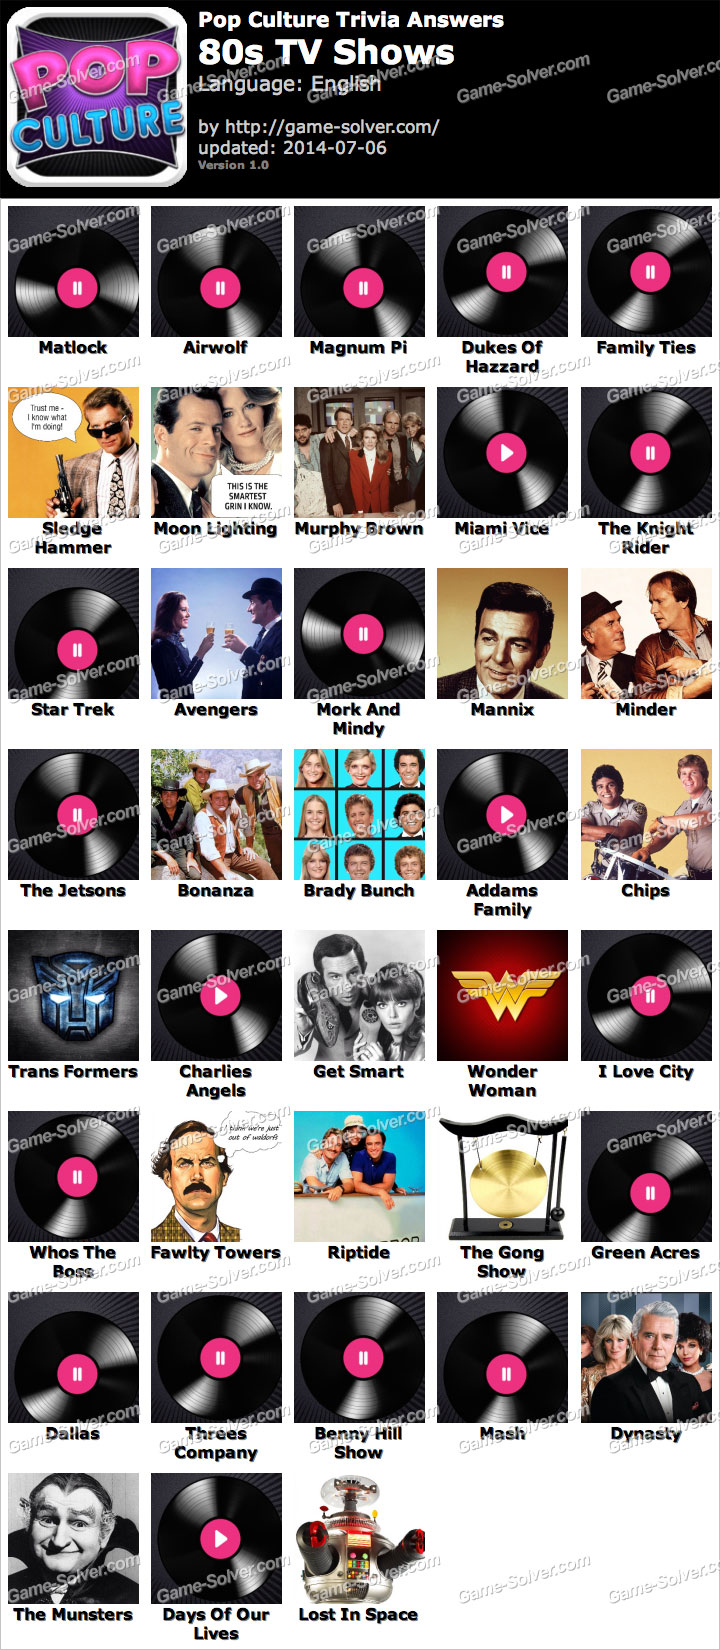 Pop Culture Trivia 80s TV Shows Answers